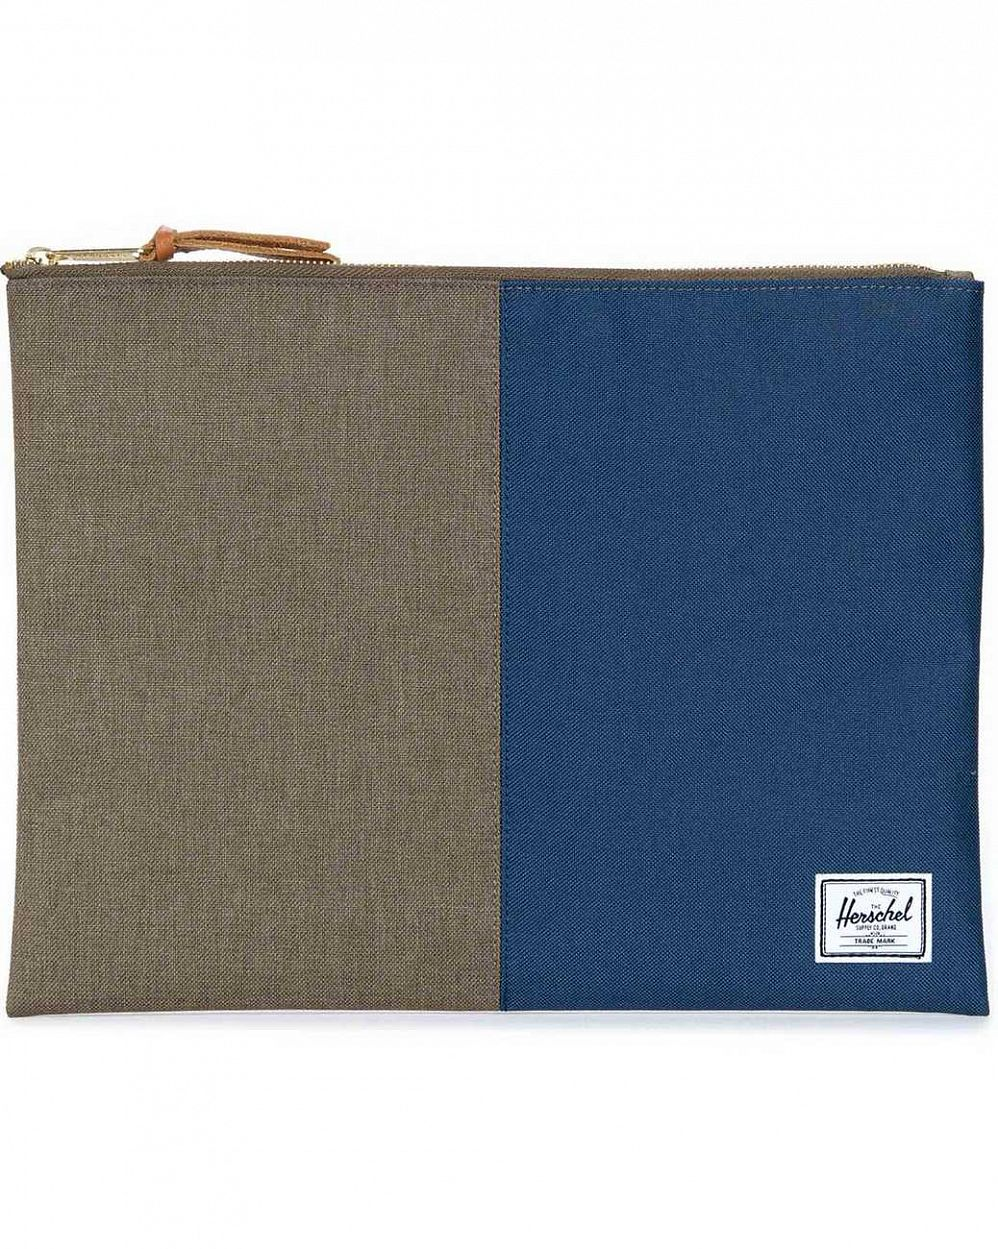 Клатч Herschel Network Extra Large beech crosshatch navy отзывы